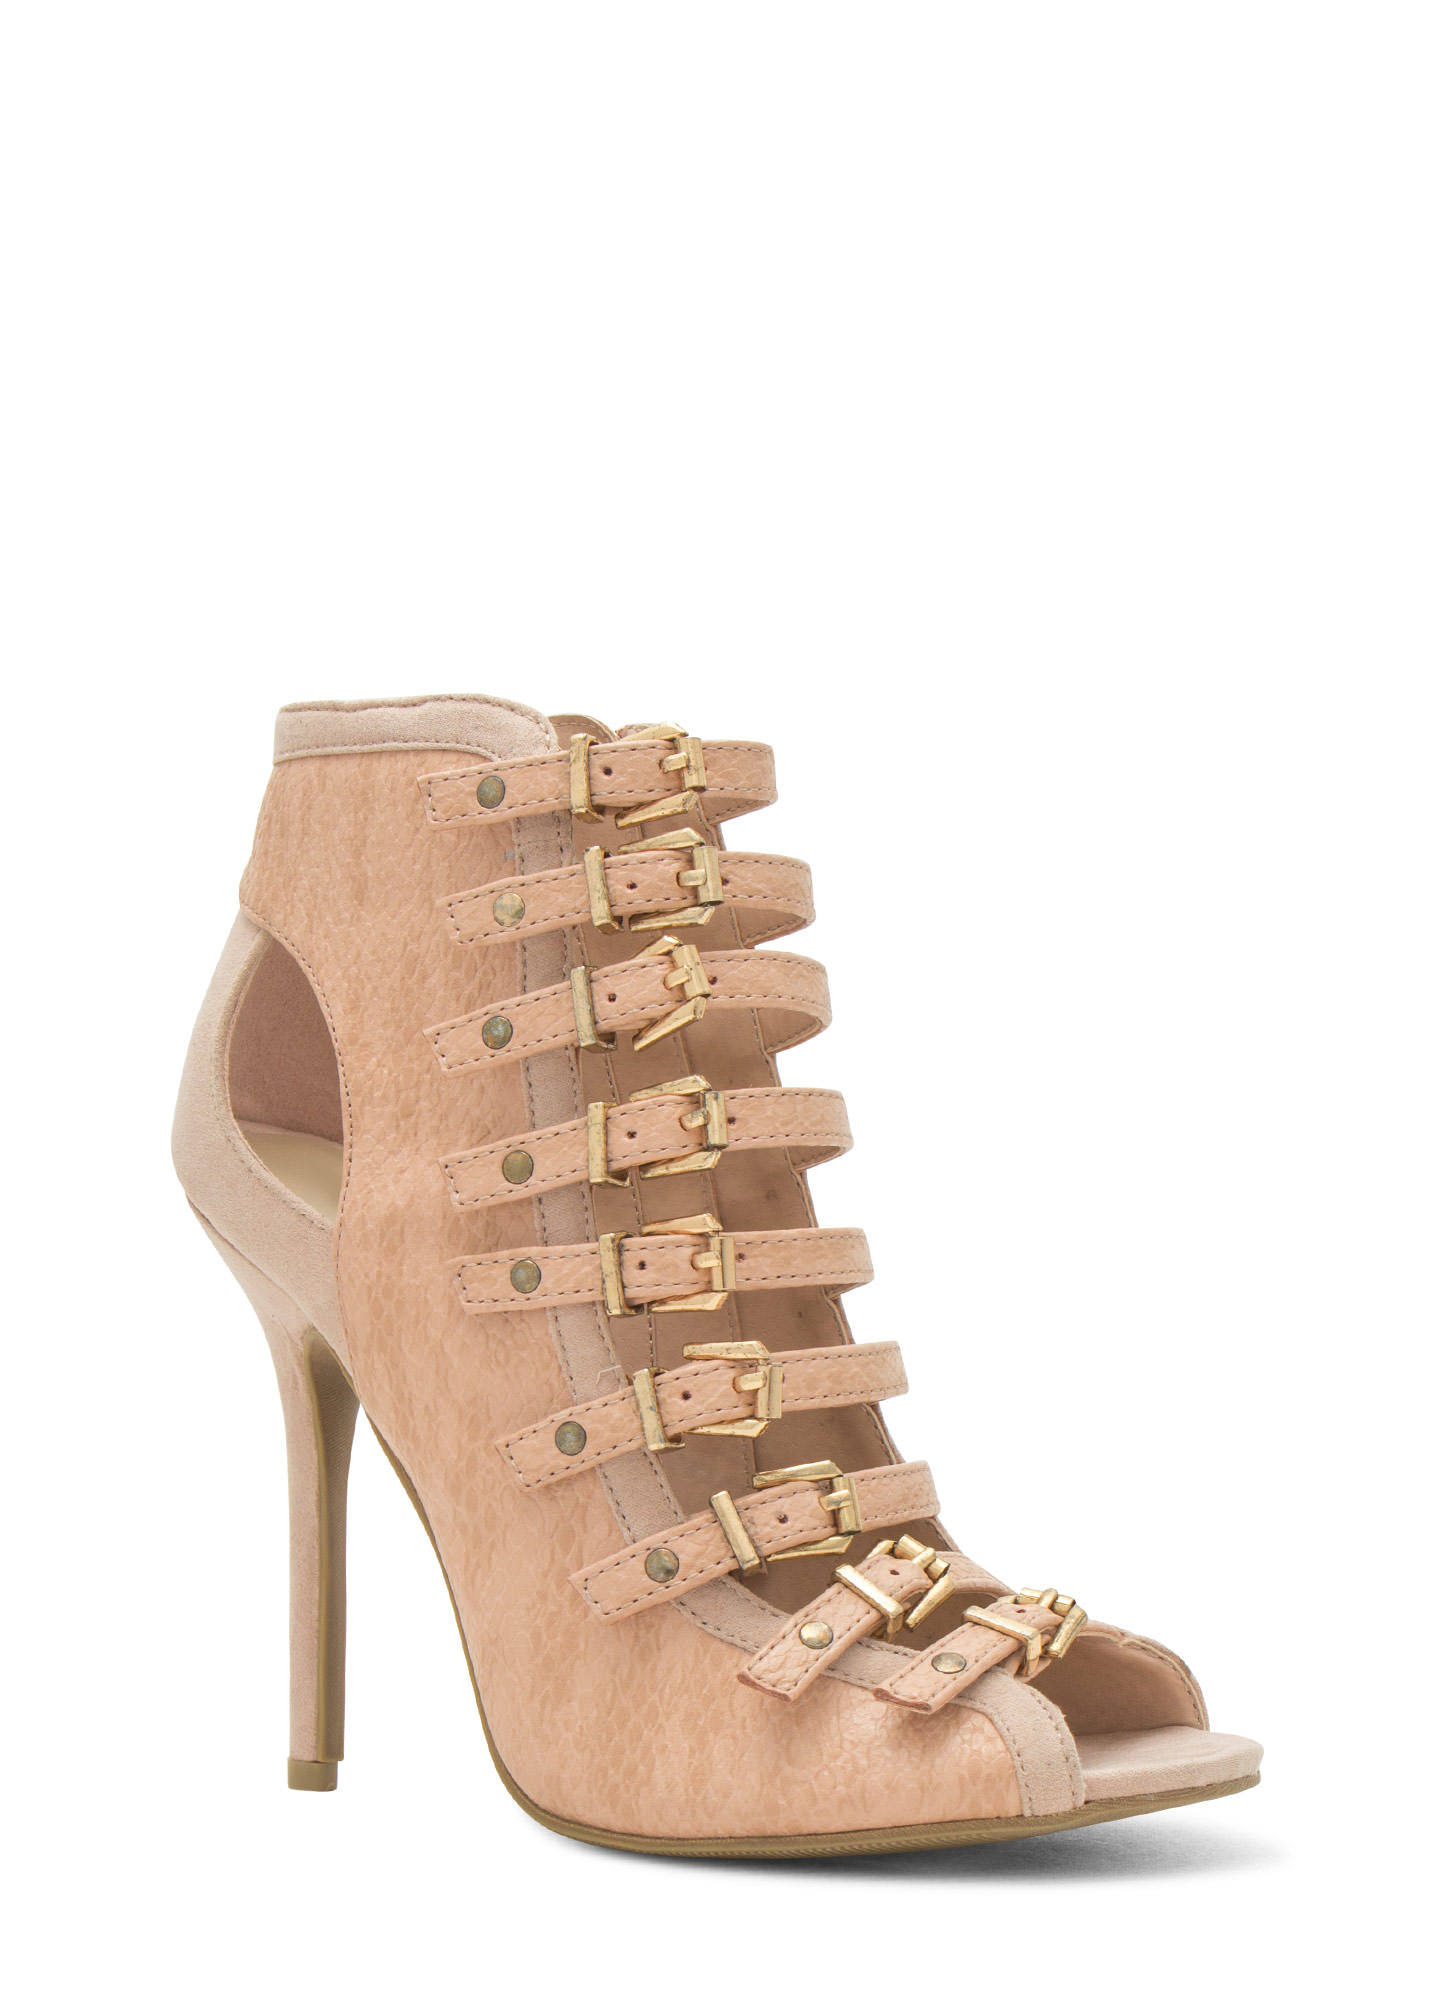 Reppin' The Reptile Strappy Heels NUDE